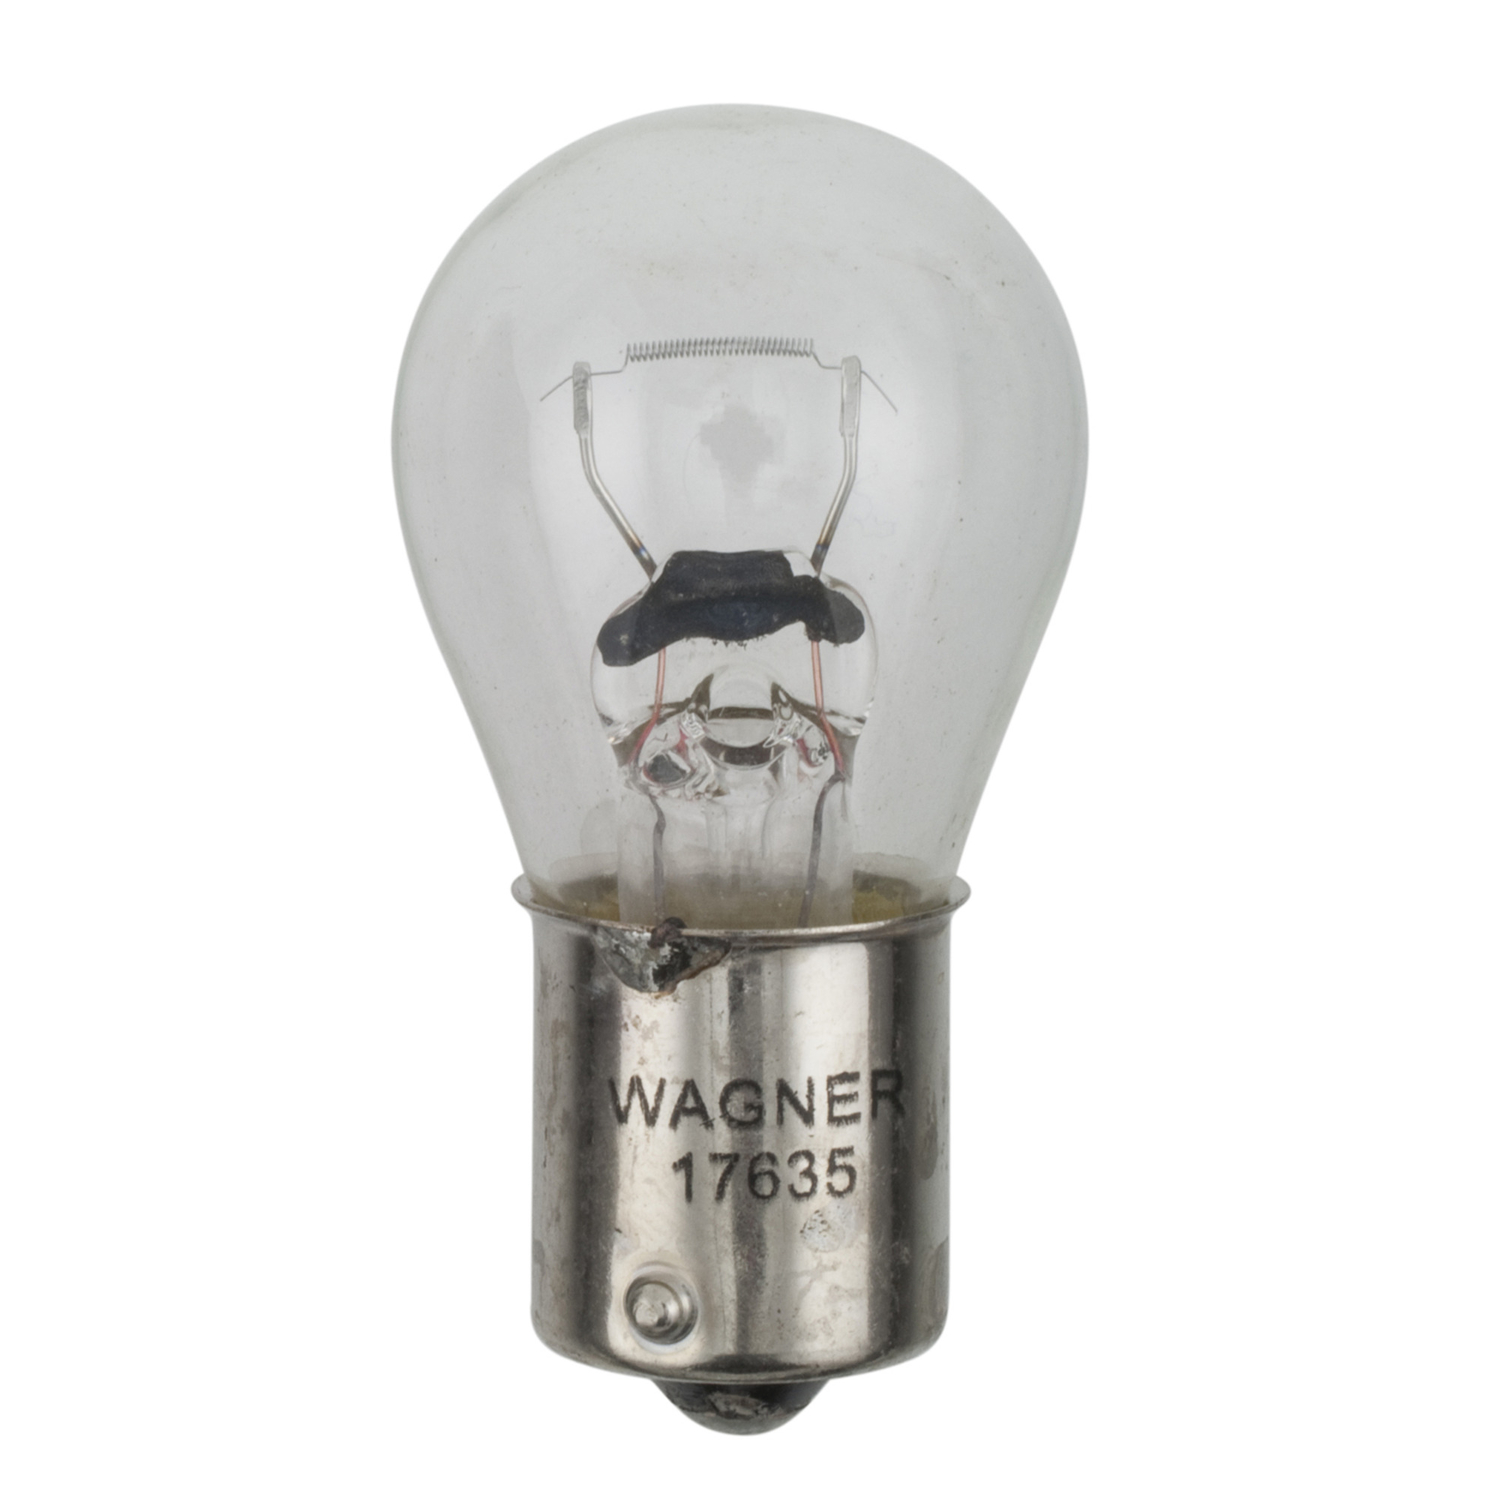 WAGNER LIGHTING - Daytime Running Light Bulb - WLP 17635